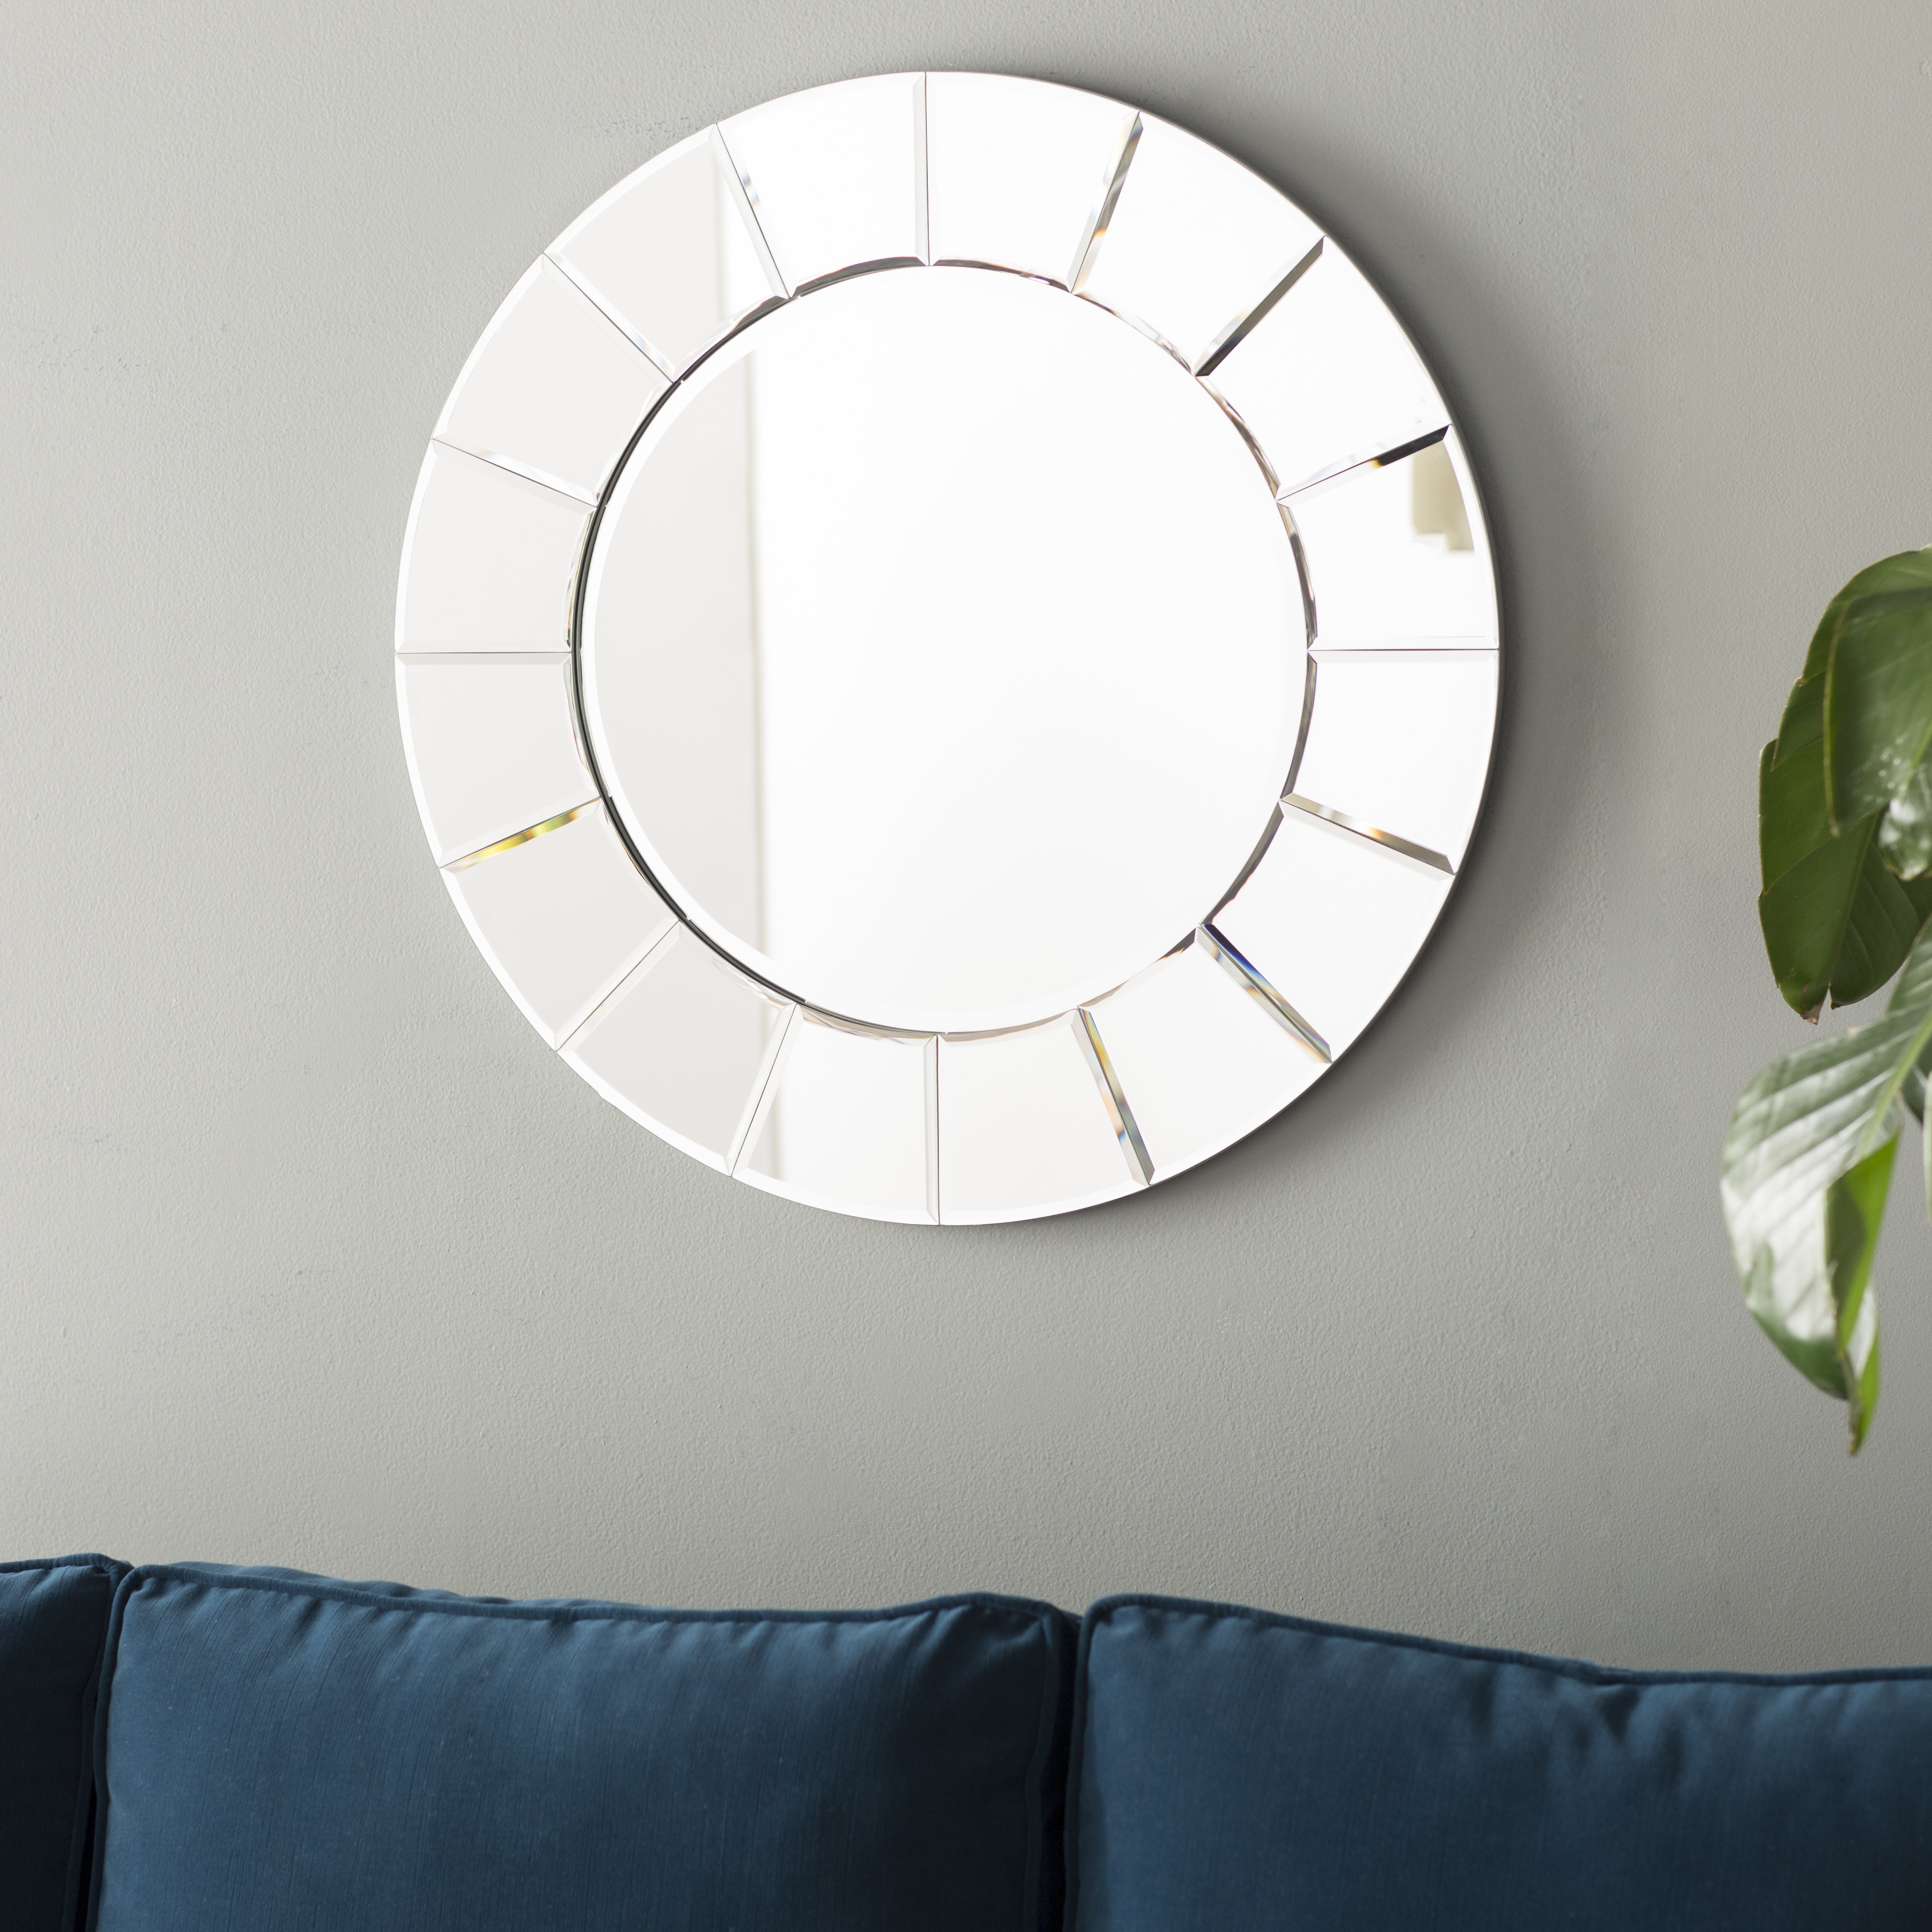 Popular Sun Shaped Wall Mirror In Sun Shaped Wall Mirrors (View 13 of 20)